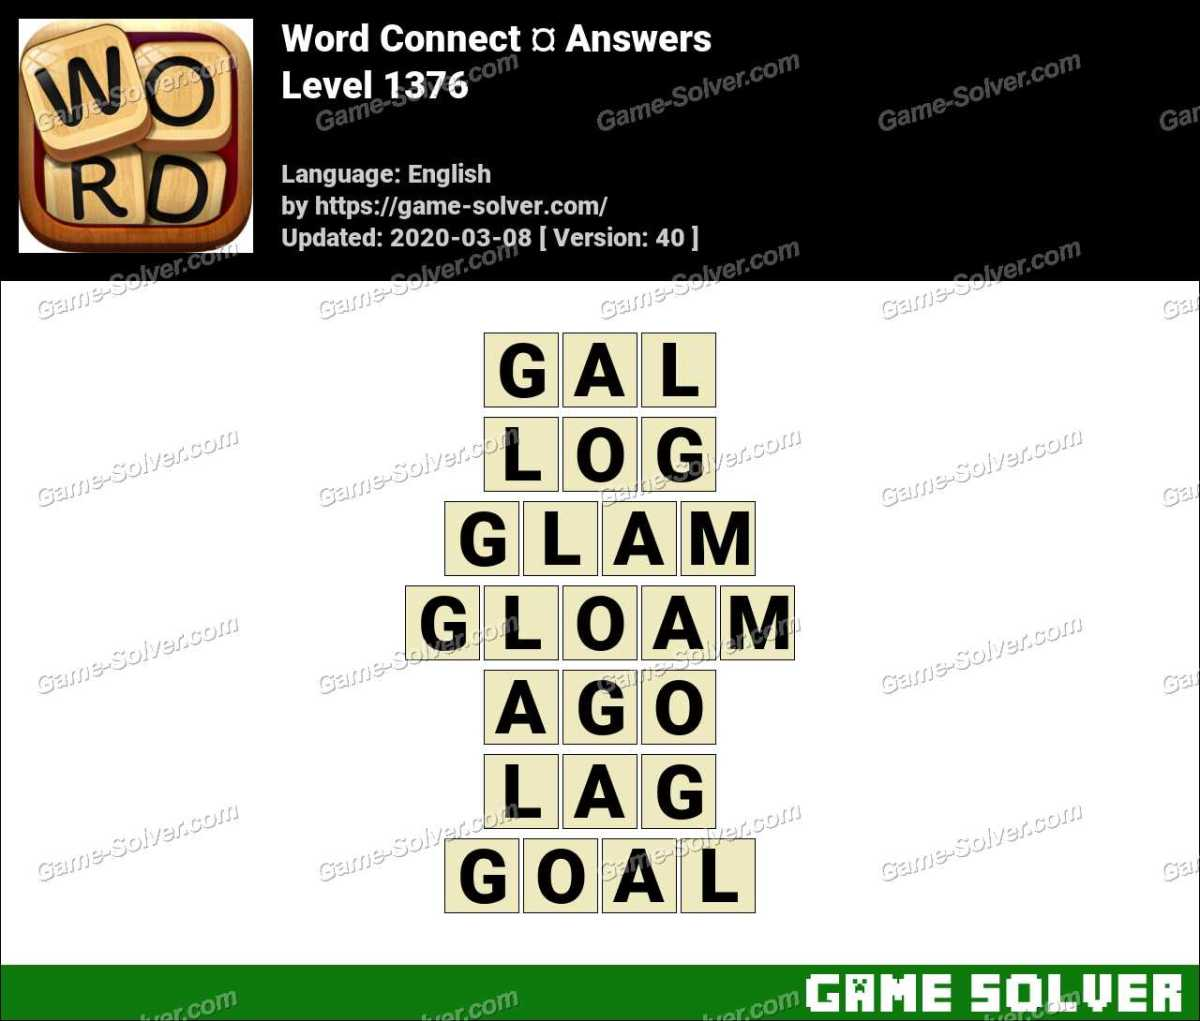 Word Connect Level 1376 Answers